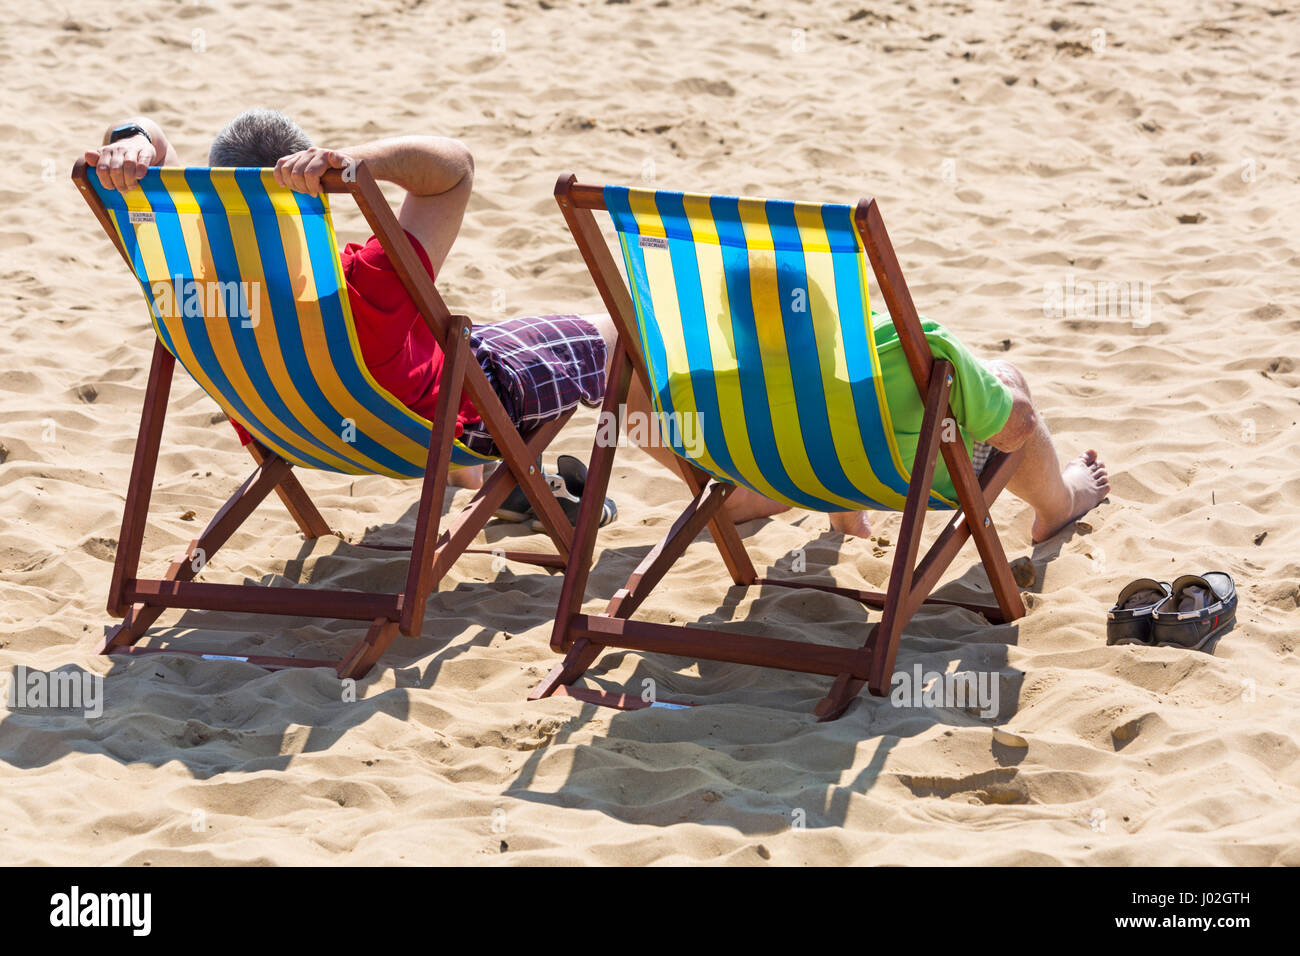 Bournemouth, Dorset, UK. 9th Apr, 2017. UK weather: lovely warm sunny day as visitors head to the seaside to make - Stock Image